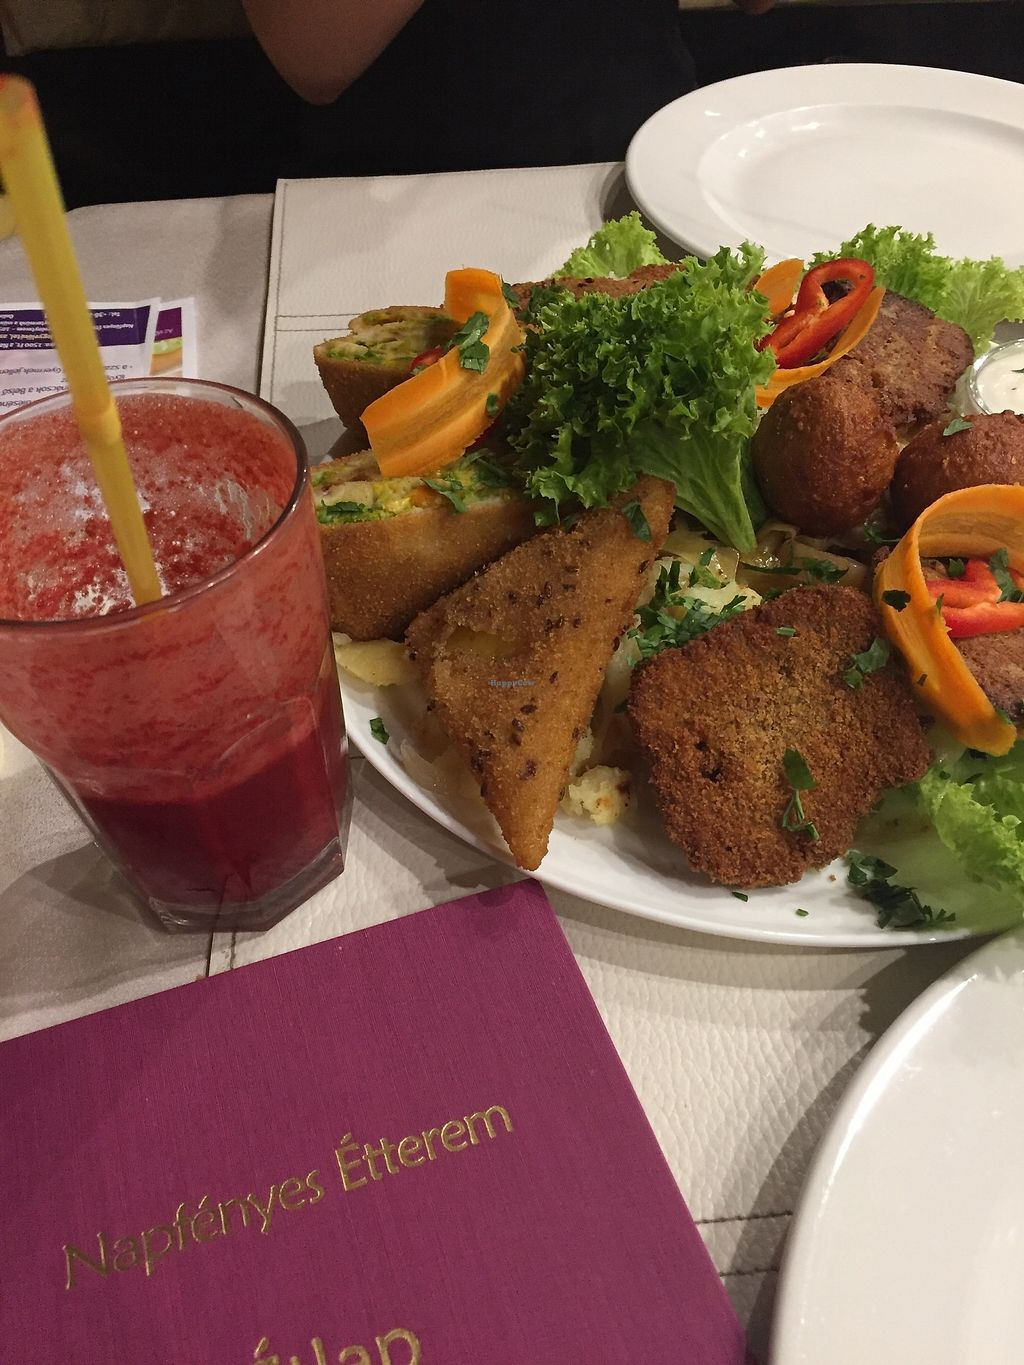 """Photo of CLOSED: Napfenyes Bistro  by <a href=""""/members/profile/Wendyw"""">Wendyw</a> <br/>Napfenyes platter for two <br/> July 22, 2017  - <a href='/contact/abuse/image/56837/283383'>Report</a>"""